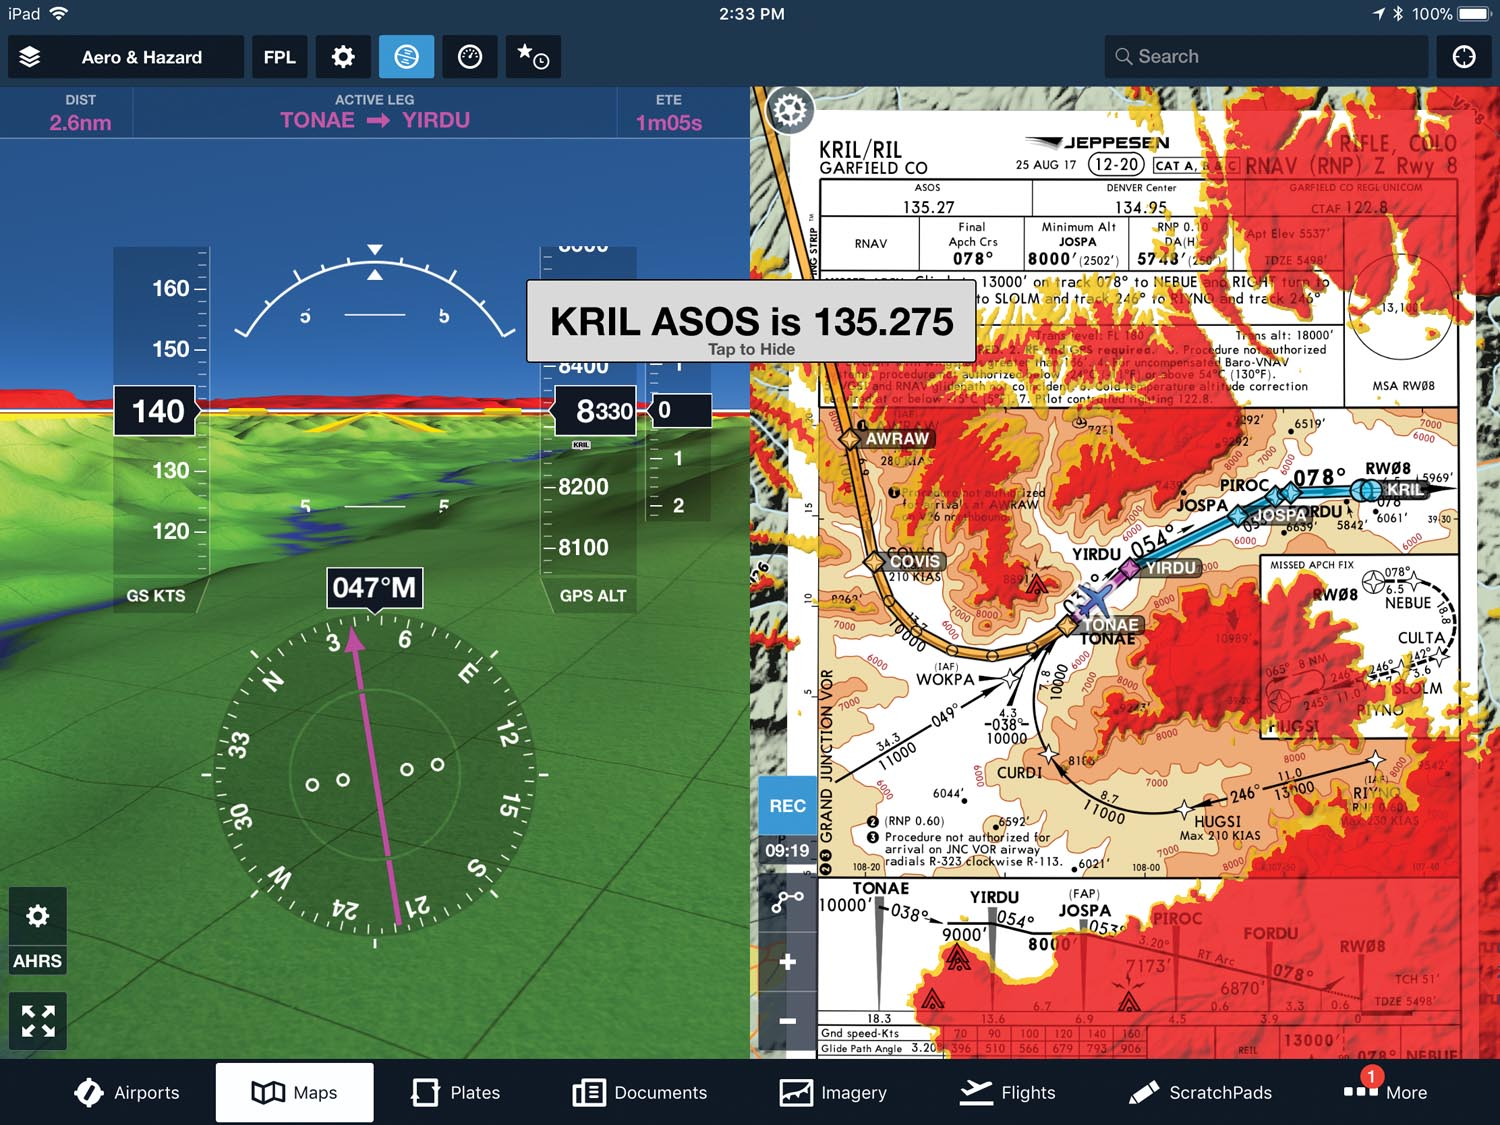 ForeFlight synthetic vision on the left with a Jeppesen approach plate on the right. The flight instruments are driven by an AHRS-capable device like Dynon's SkyView system.